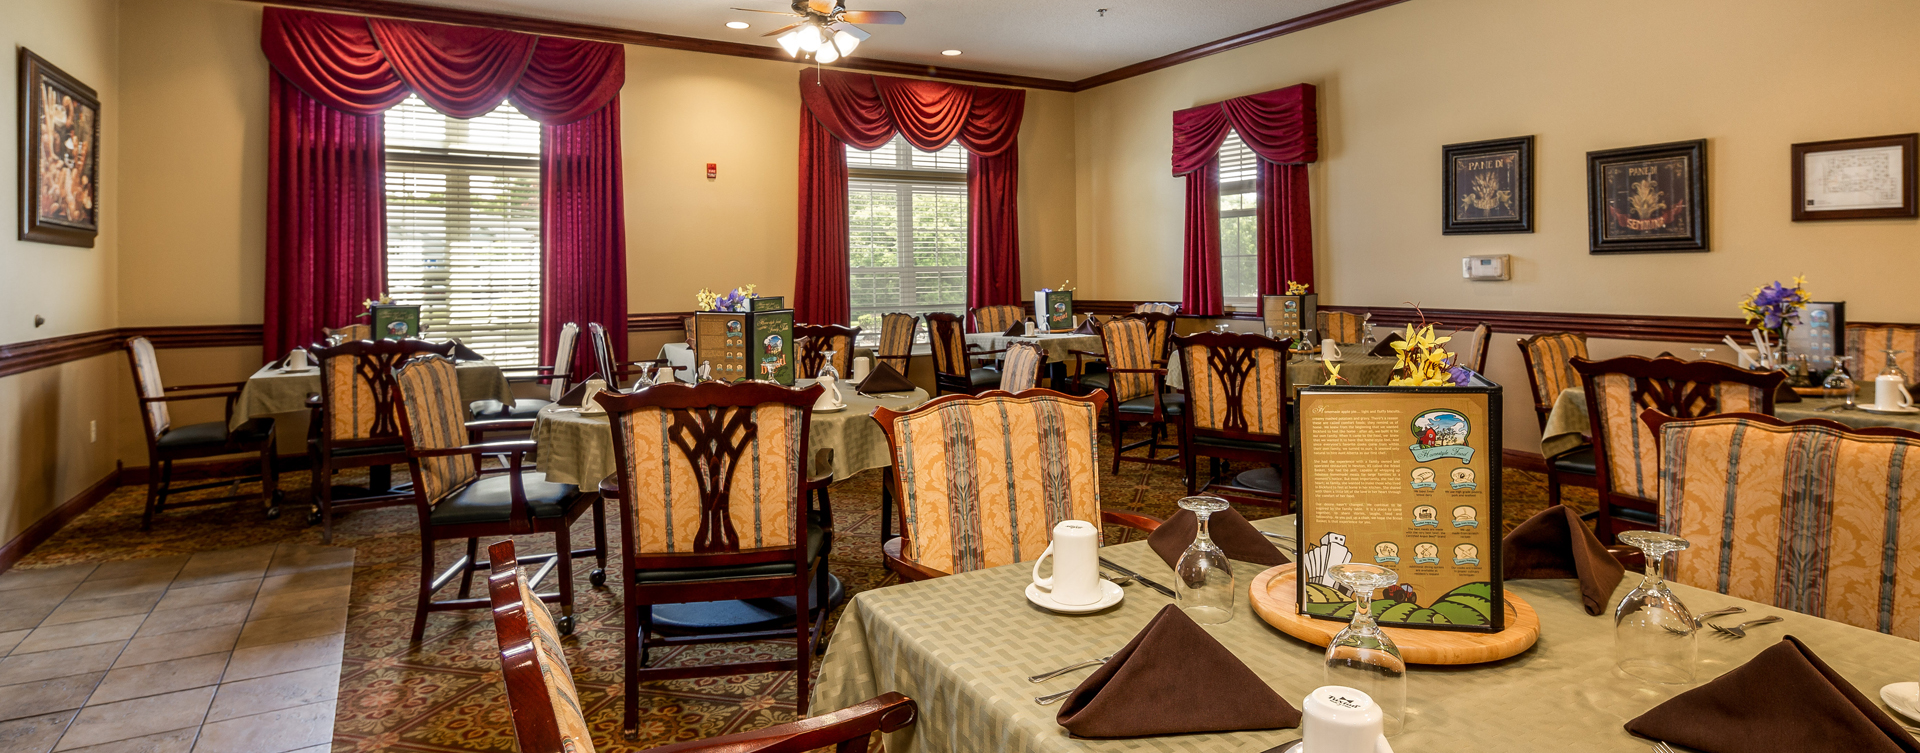 Enjoy homestyle food with made-from-scratch recipes in our dining room at Bickford of Battle Creek